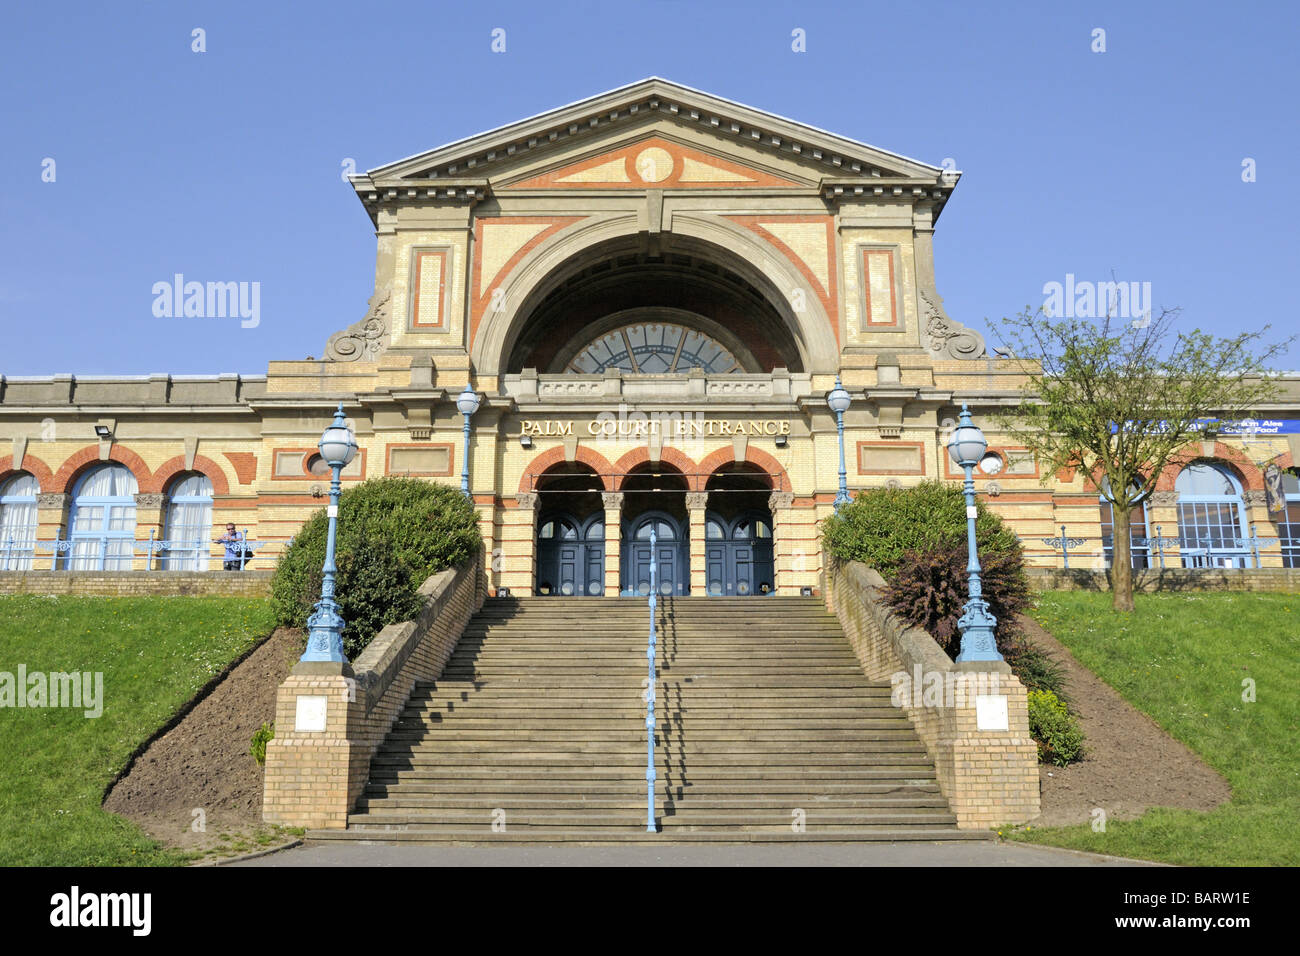 Alexandra Palace Palm Court Entrance London England UK - Stock Image